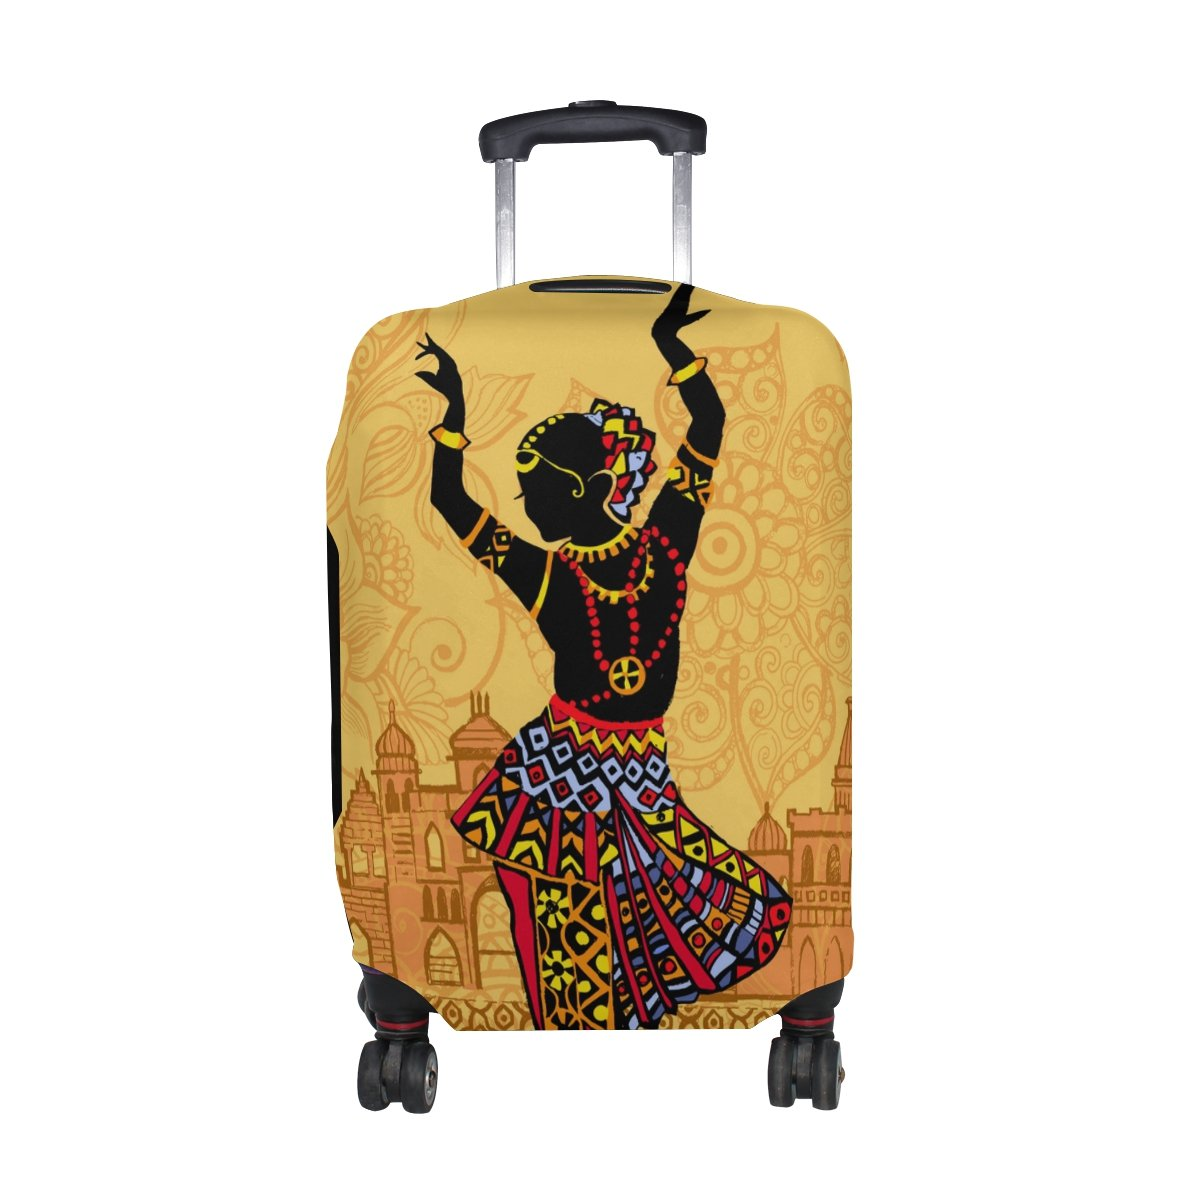 U LIFE Vintage Indian Women Lotus Luggage Suitcase Cover Protector for Men Women